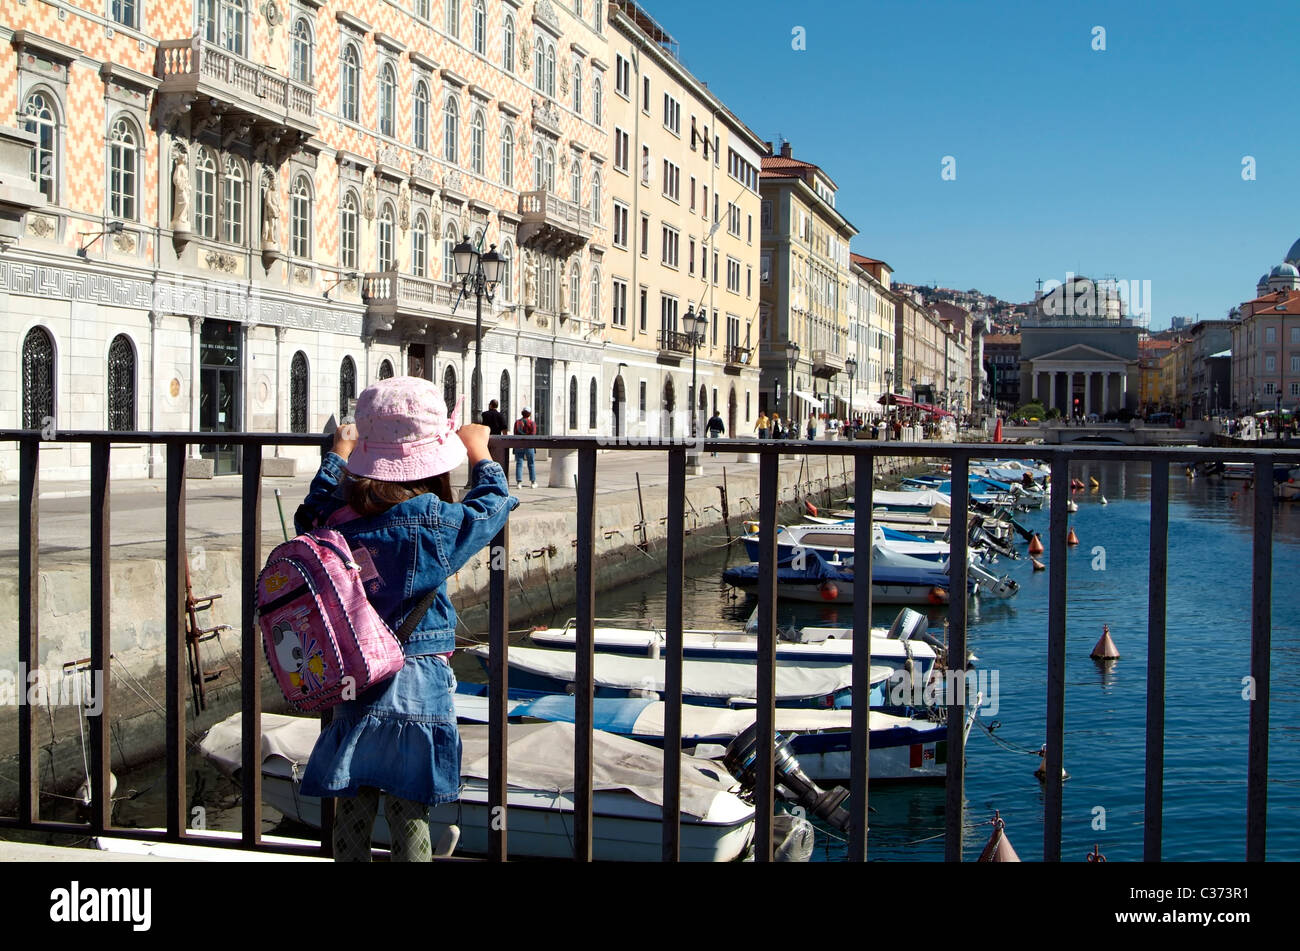 A lonesome little girl is looking to some boats in a canal at the Adriatic sea. - Stock Image